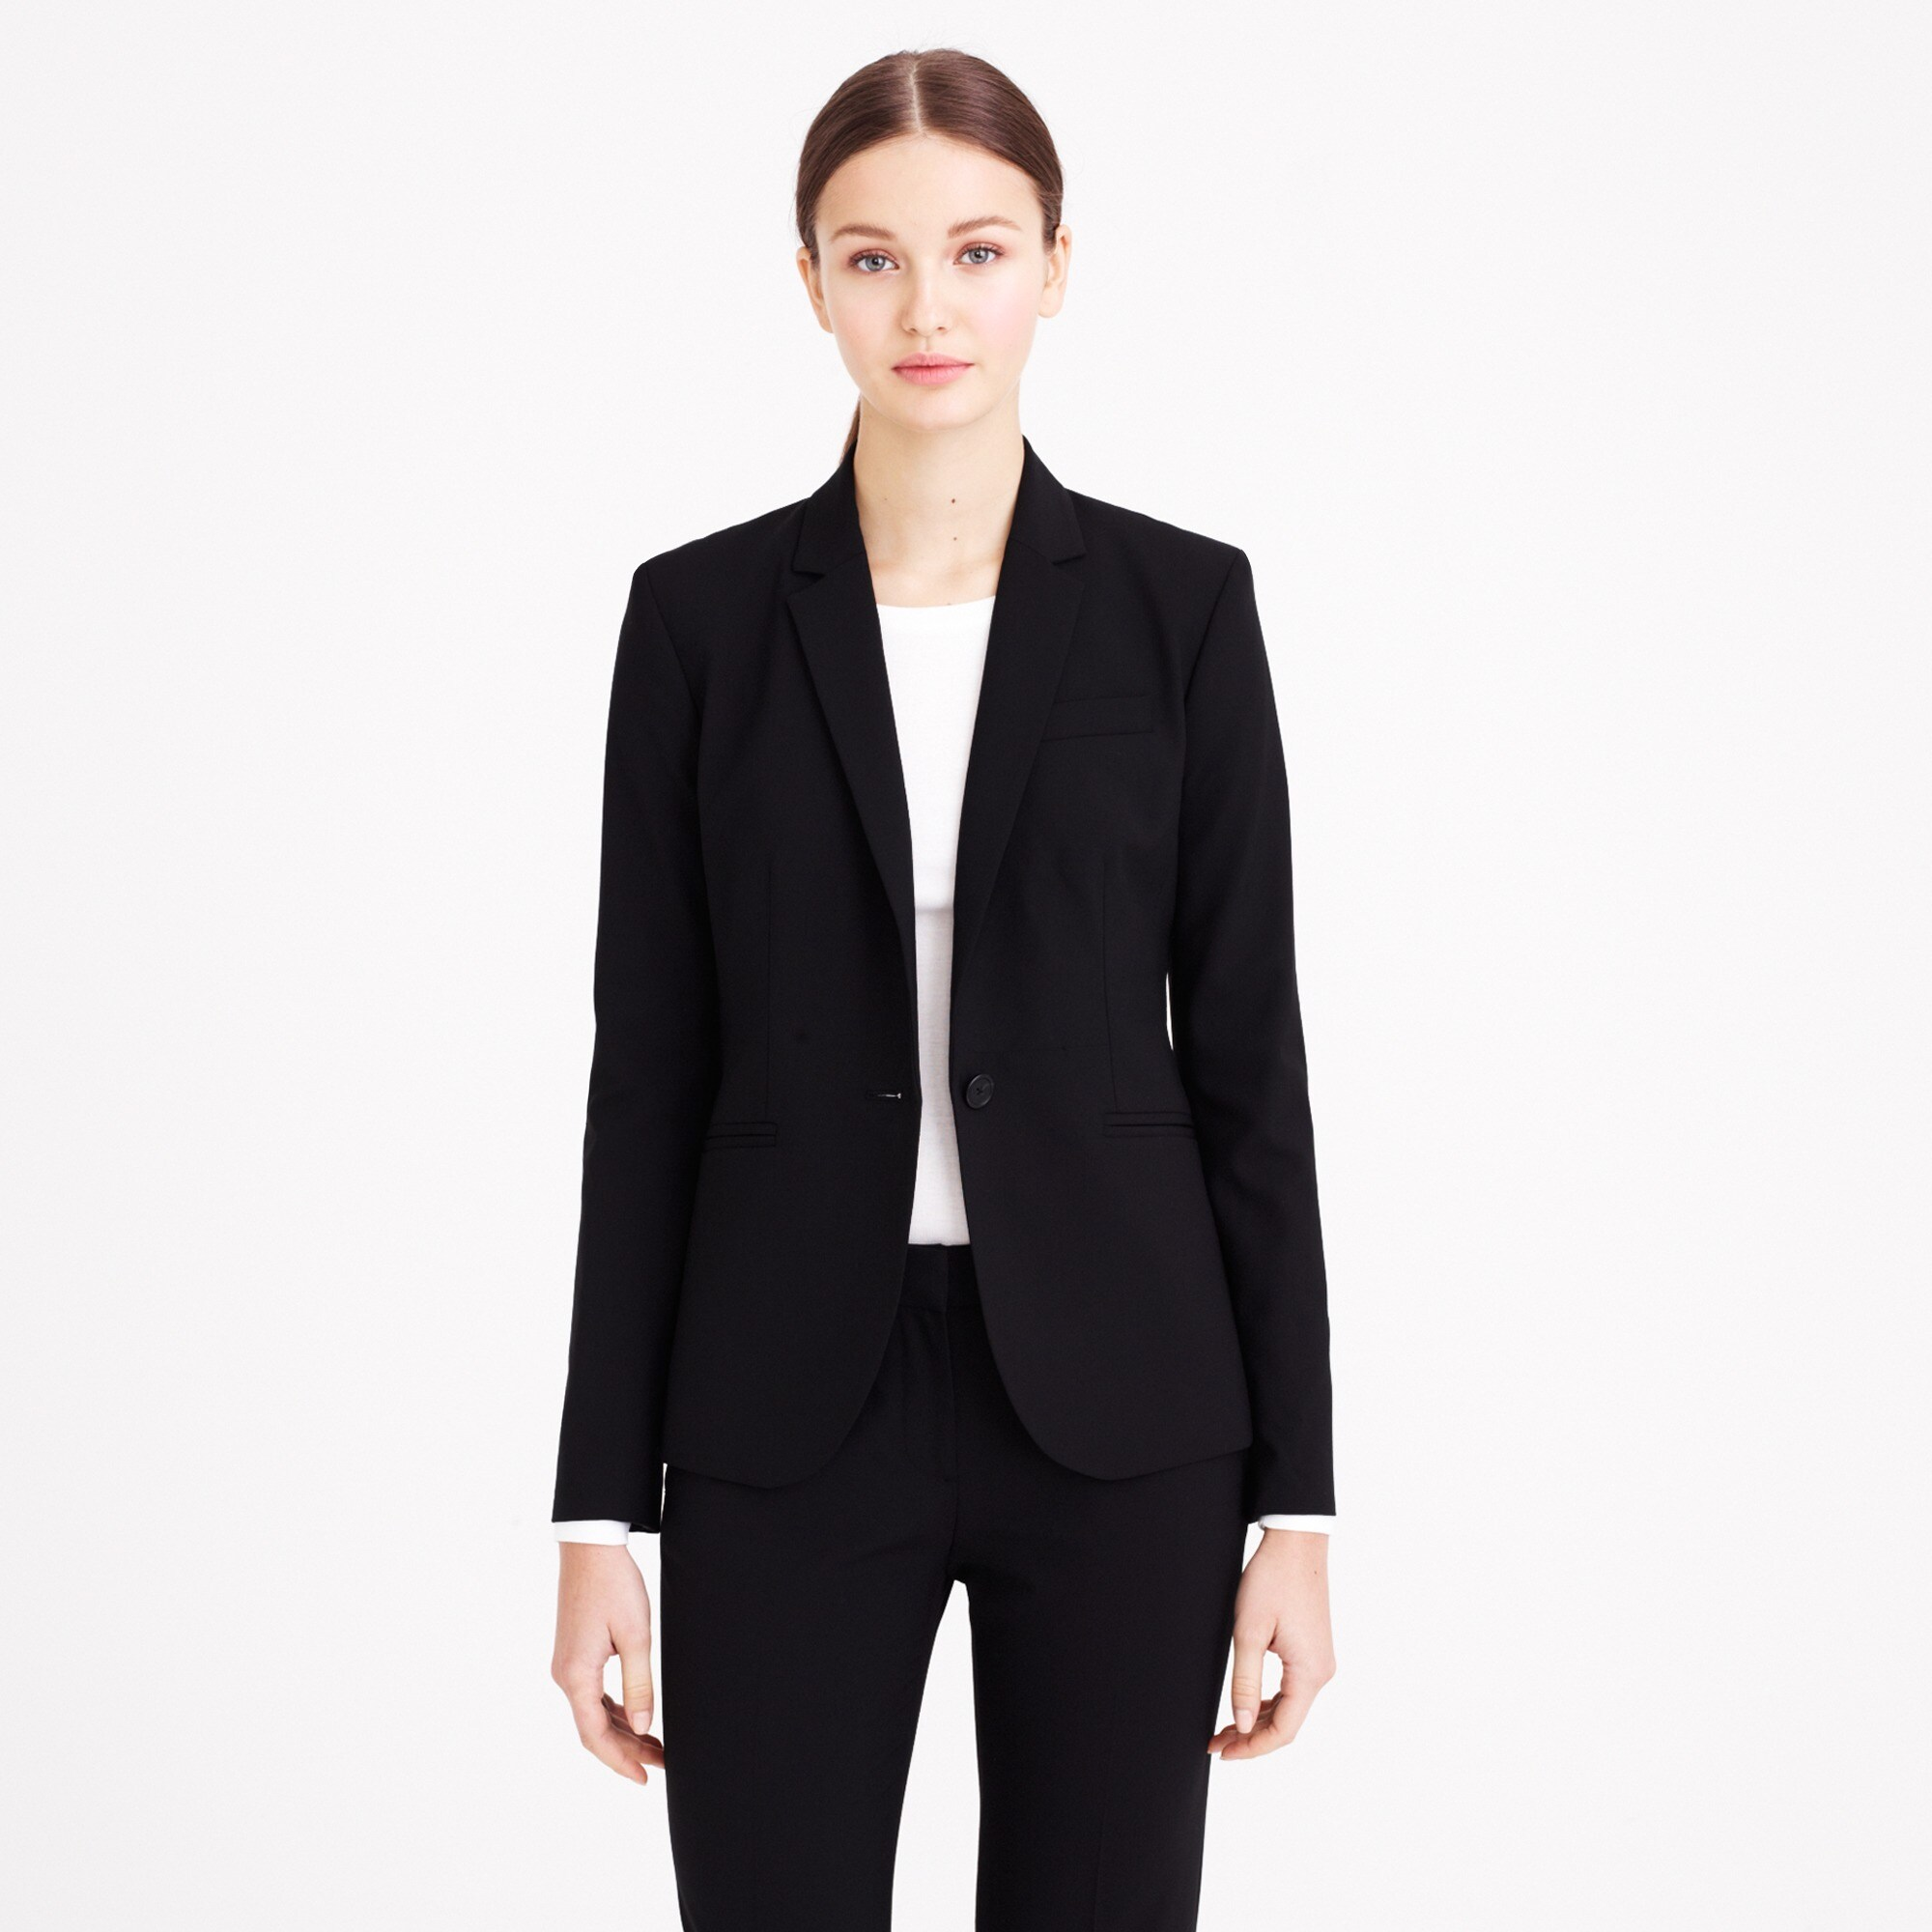 campbell blazer in italian stretch wool : women's blazers